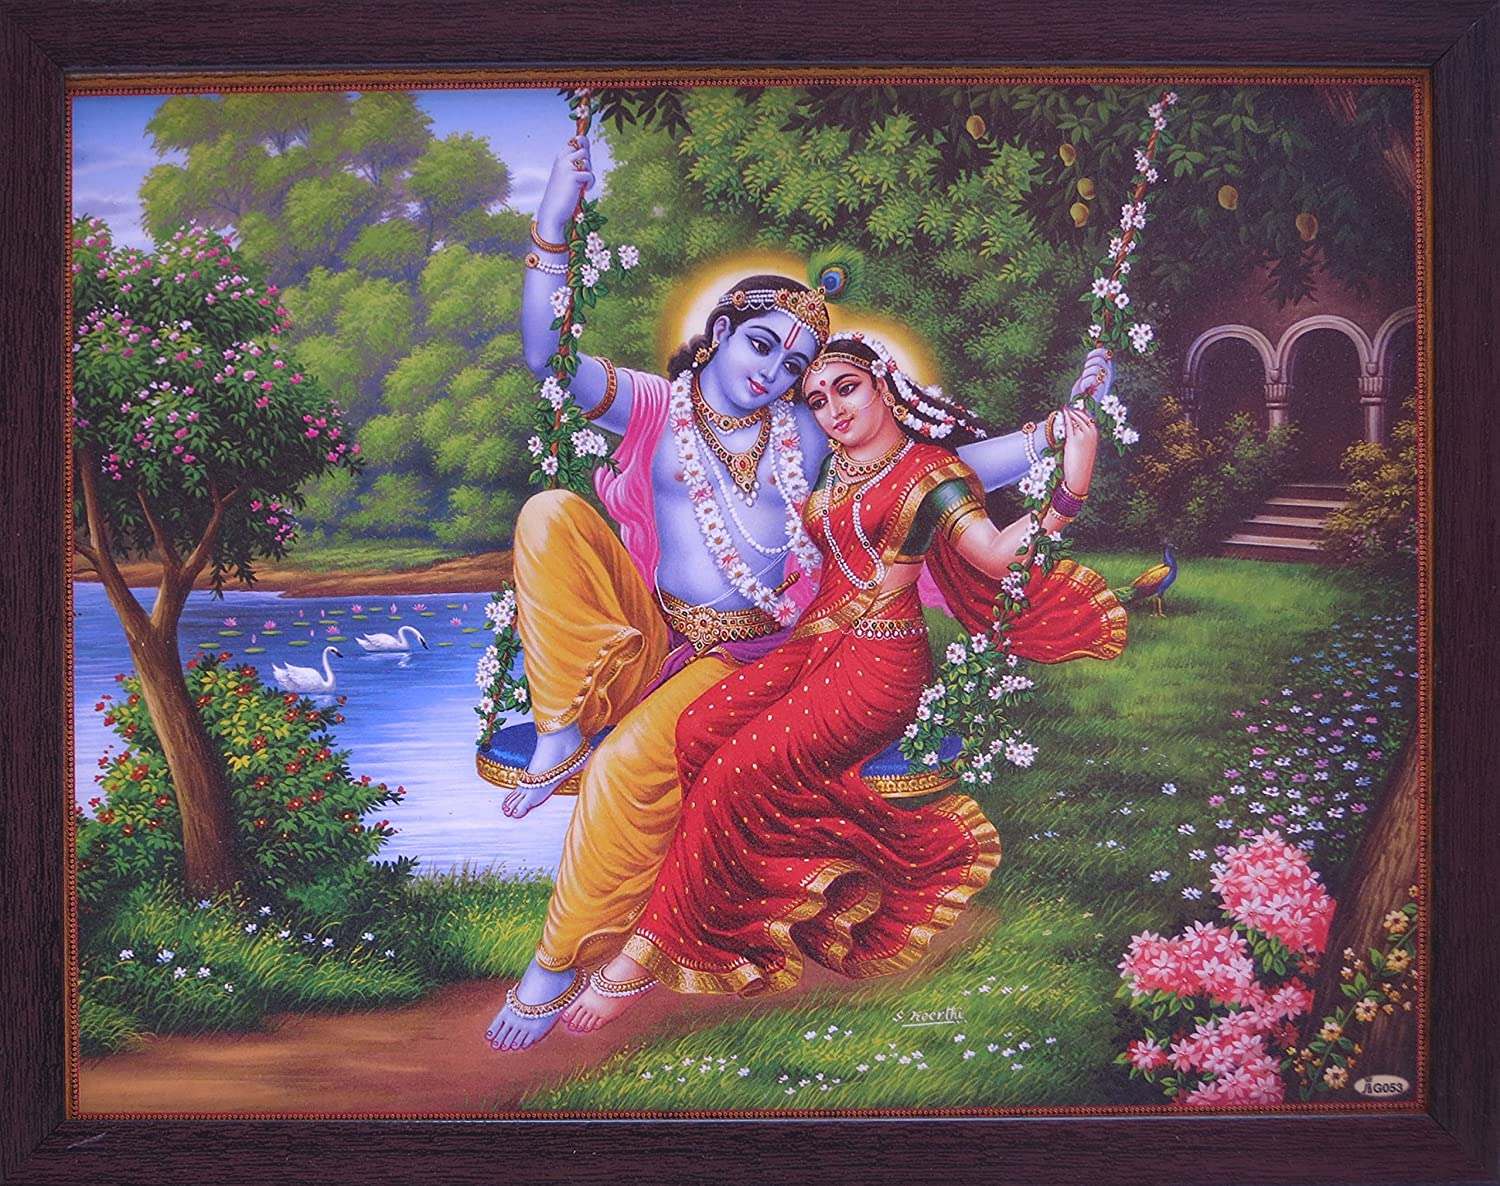 Handicraft Store Lord Radha & Krishna Enjoying Swing at River Coast in Forest, a Decorative Religious Poster with Frame, It's Good Gift to Give Someone to Any Occasion.